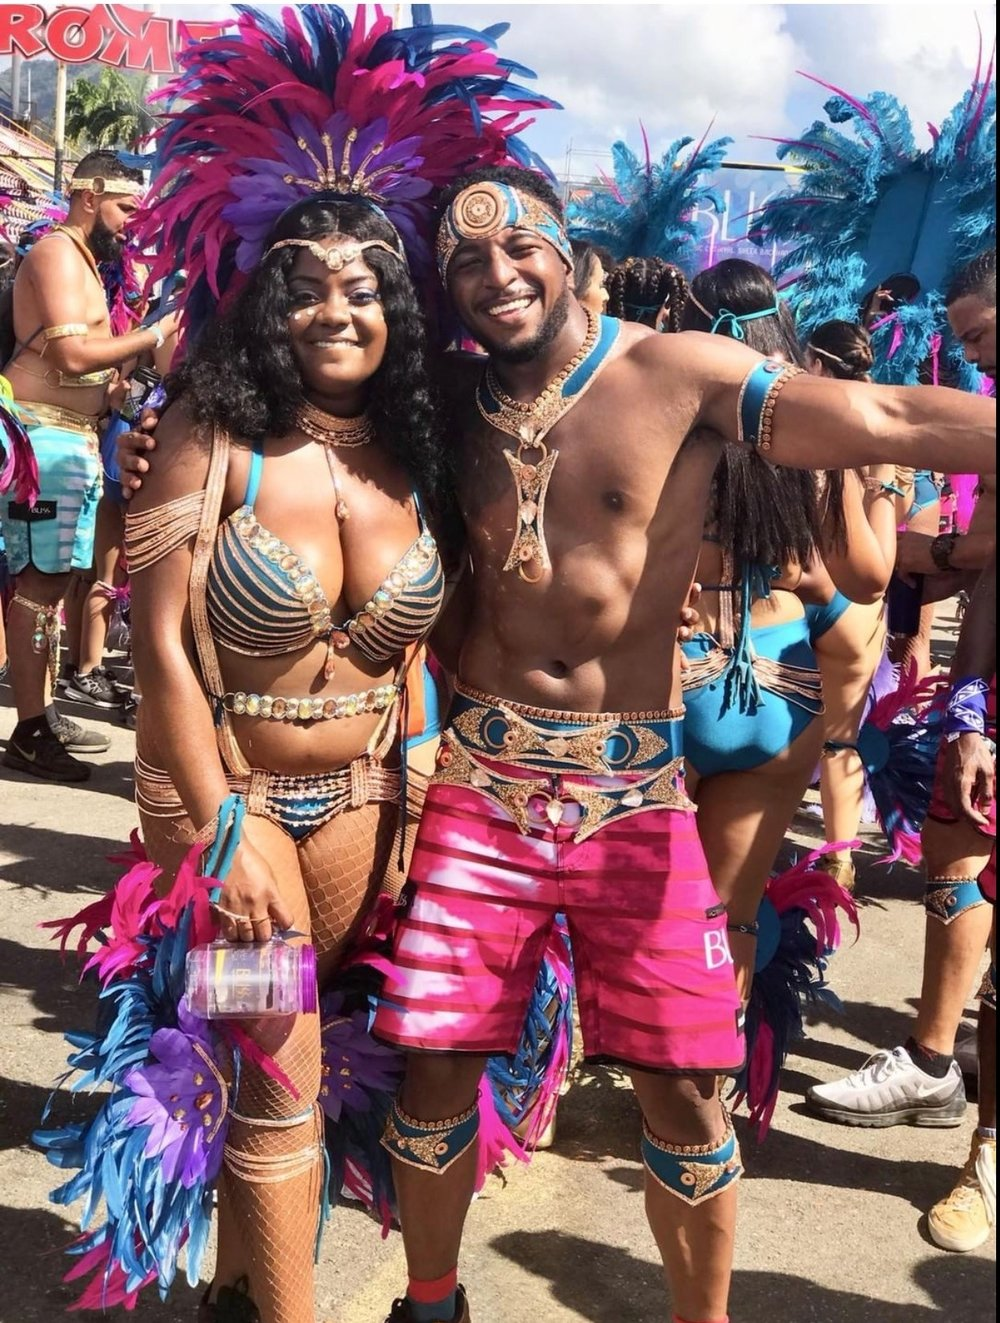 Left: Follower, @ heyyychanelle  celebrating Carnival in Trinidad 😍